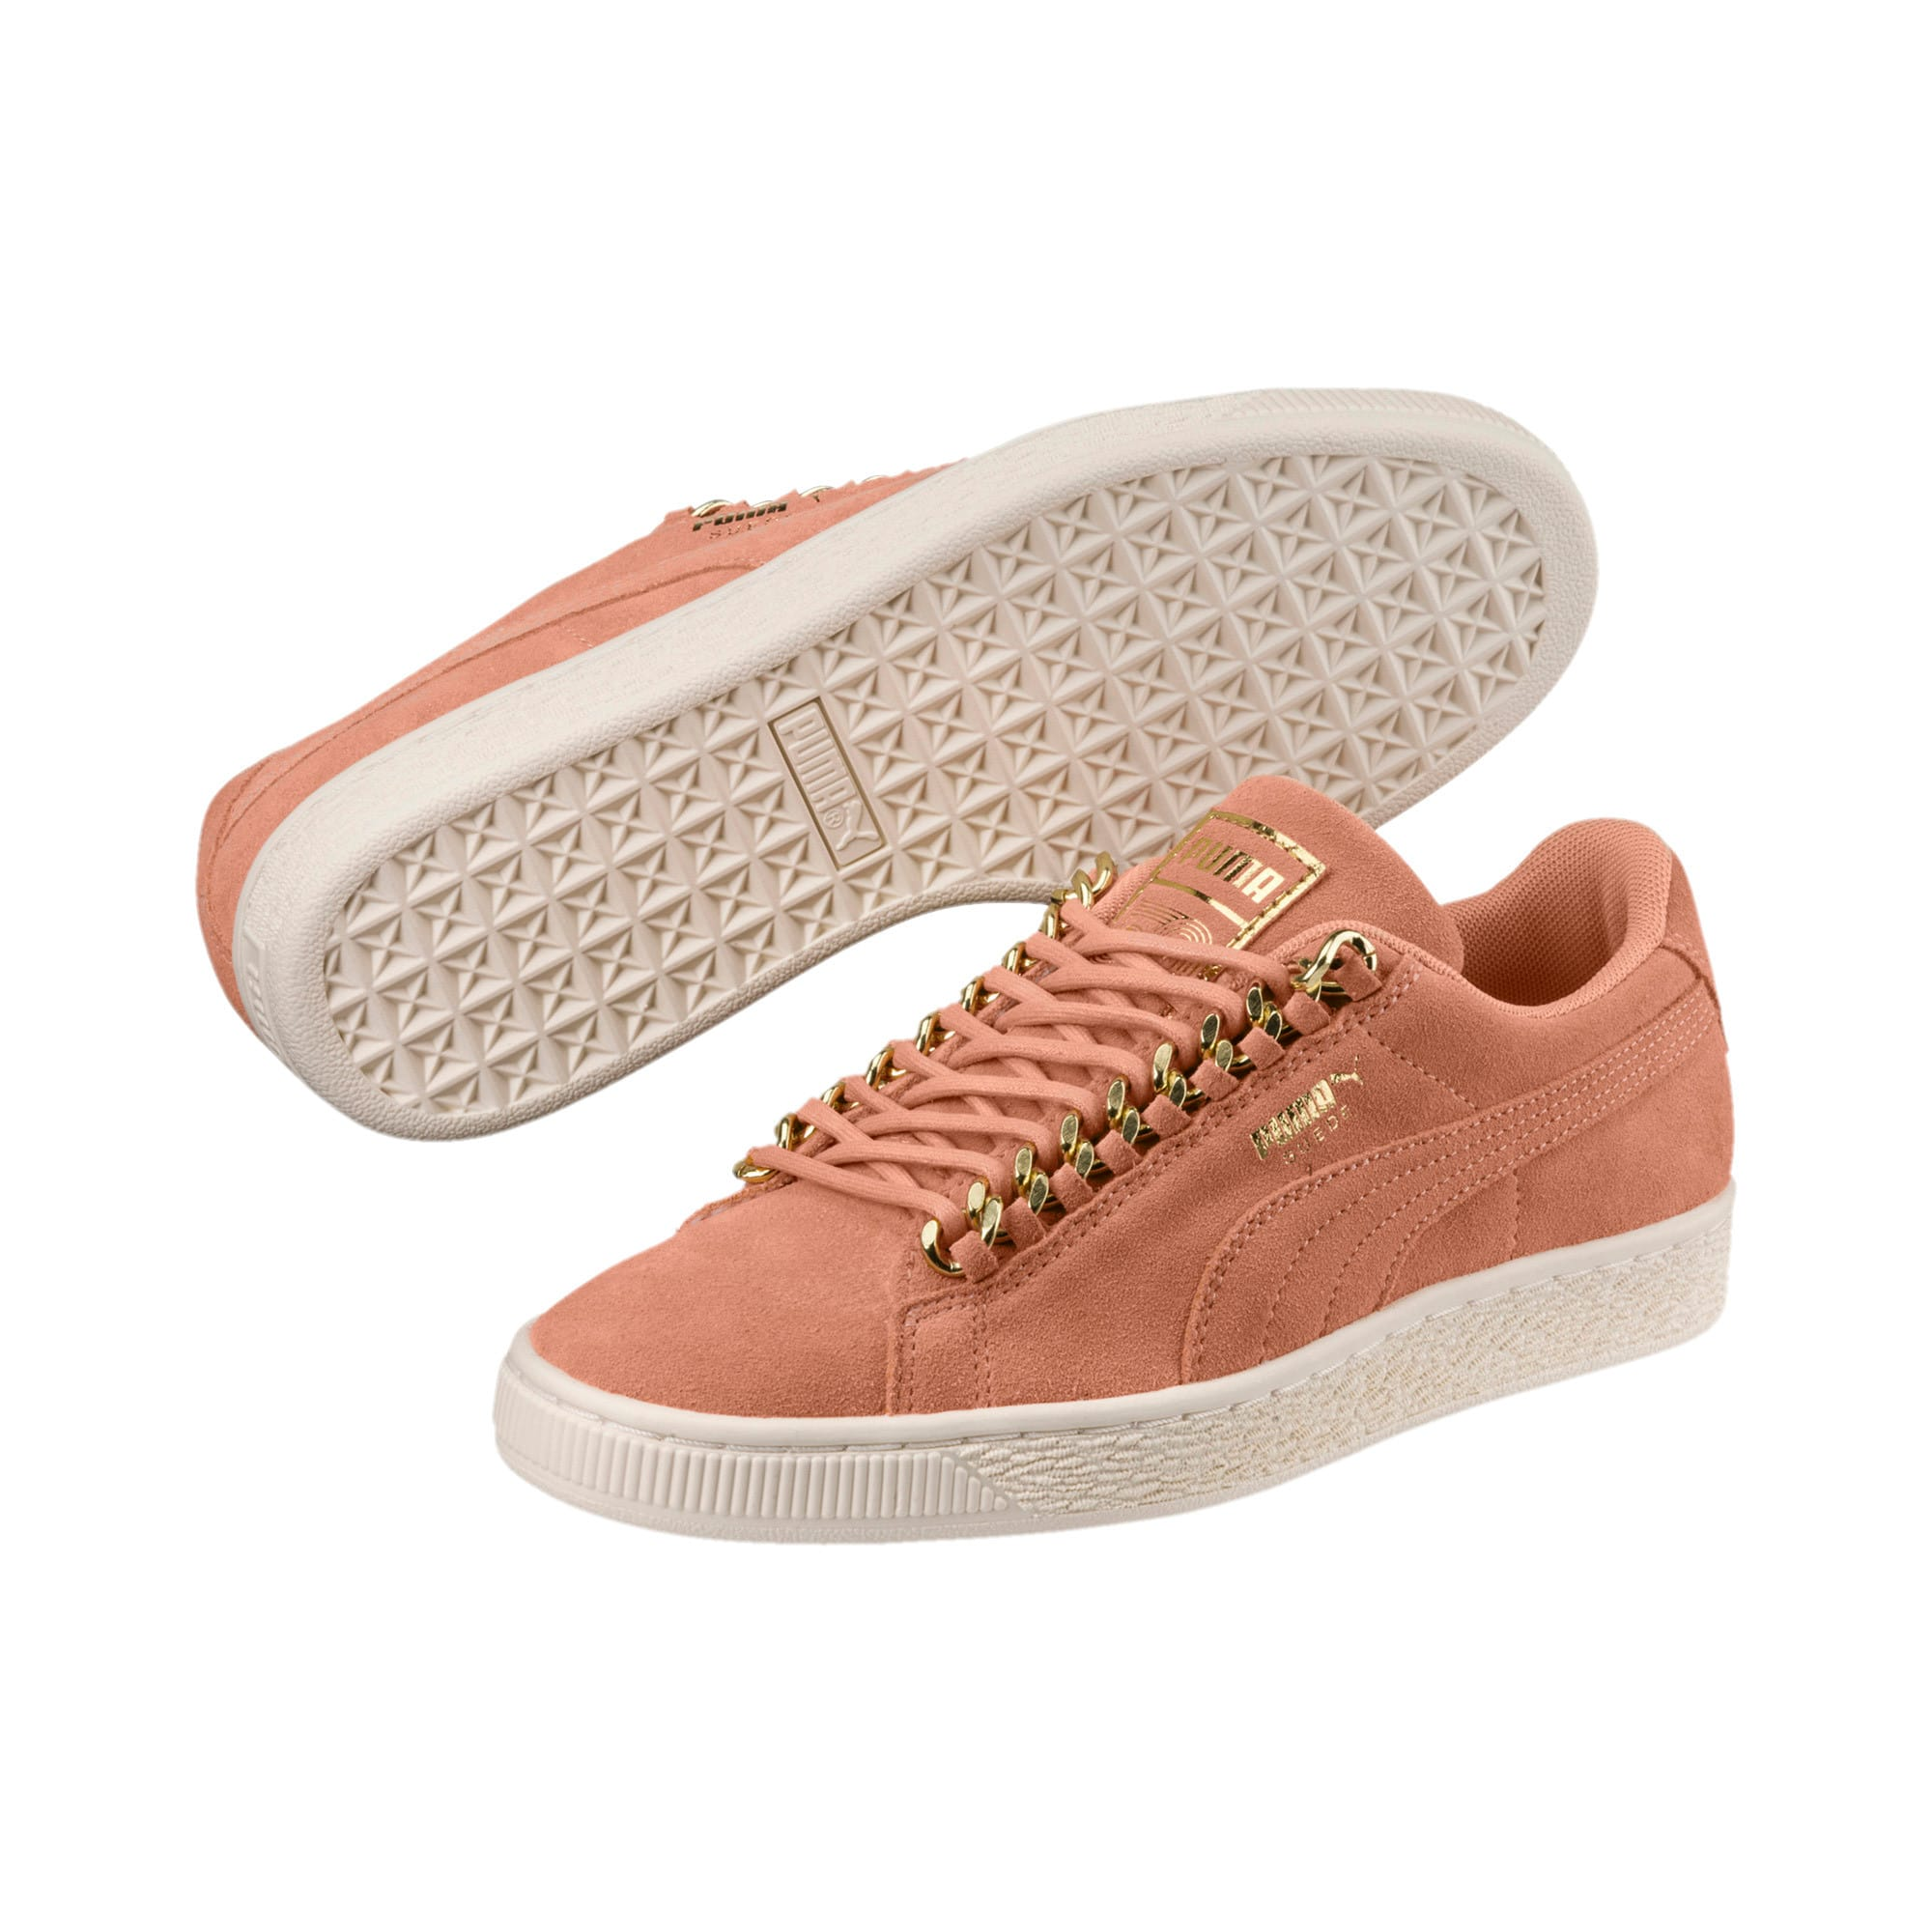 Thumbnail 2 of Suede Classic Chains Women's Trainers, Dusty Coral-Puma Team Gold, medium-IND